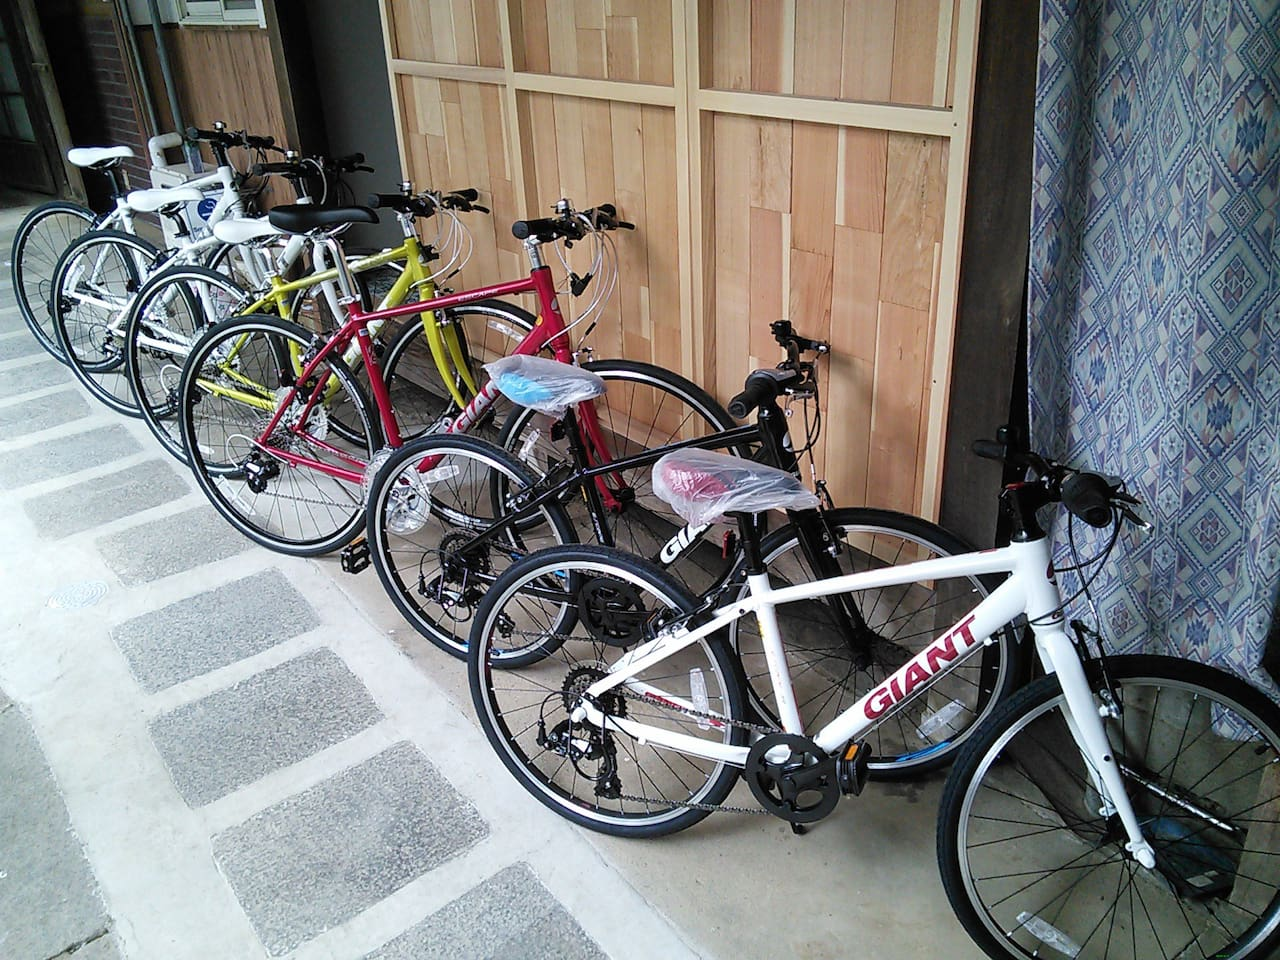 Rental cycle (included in the charge)